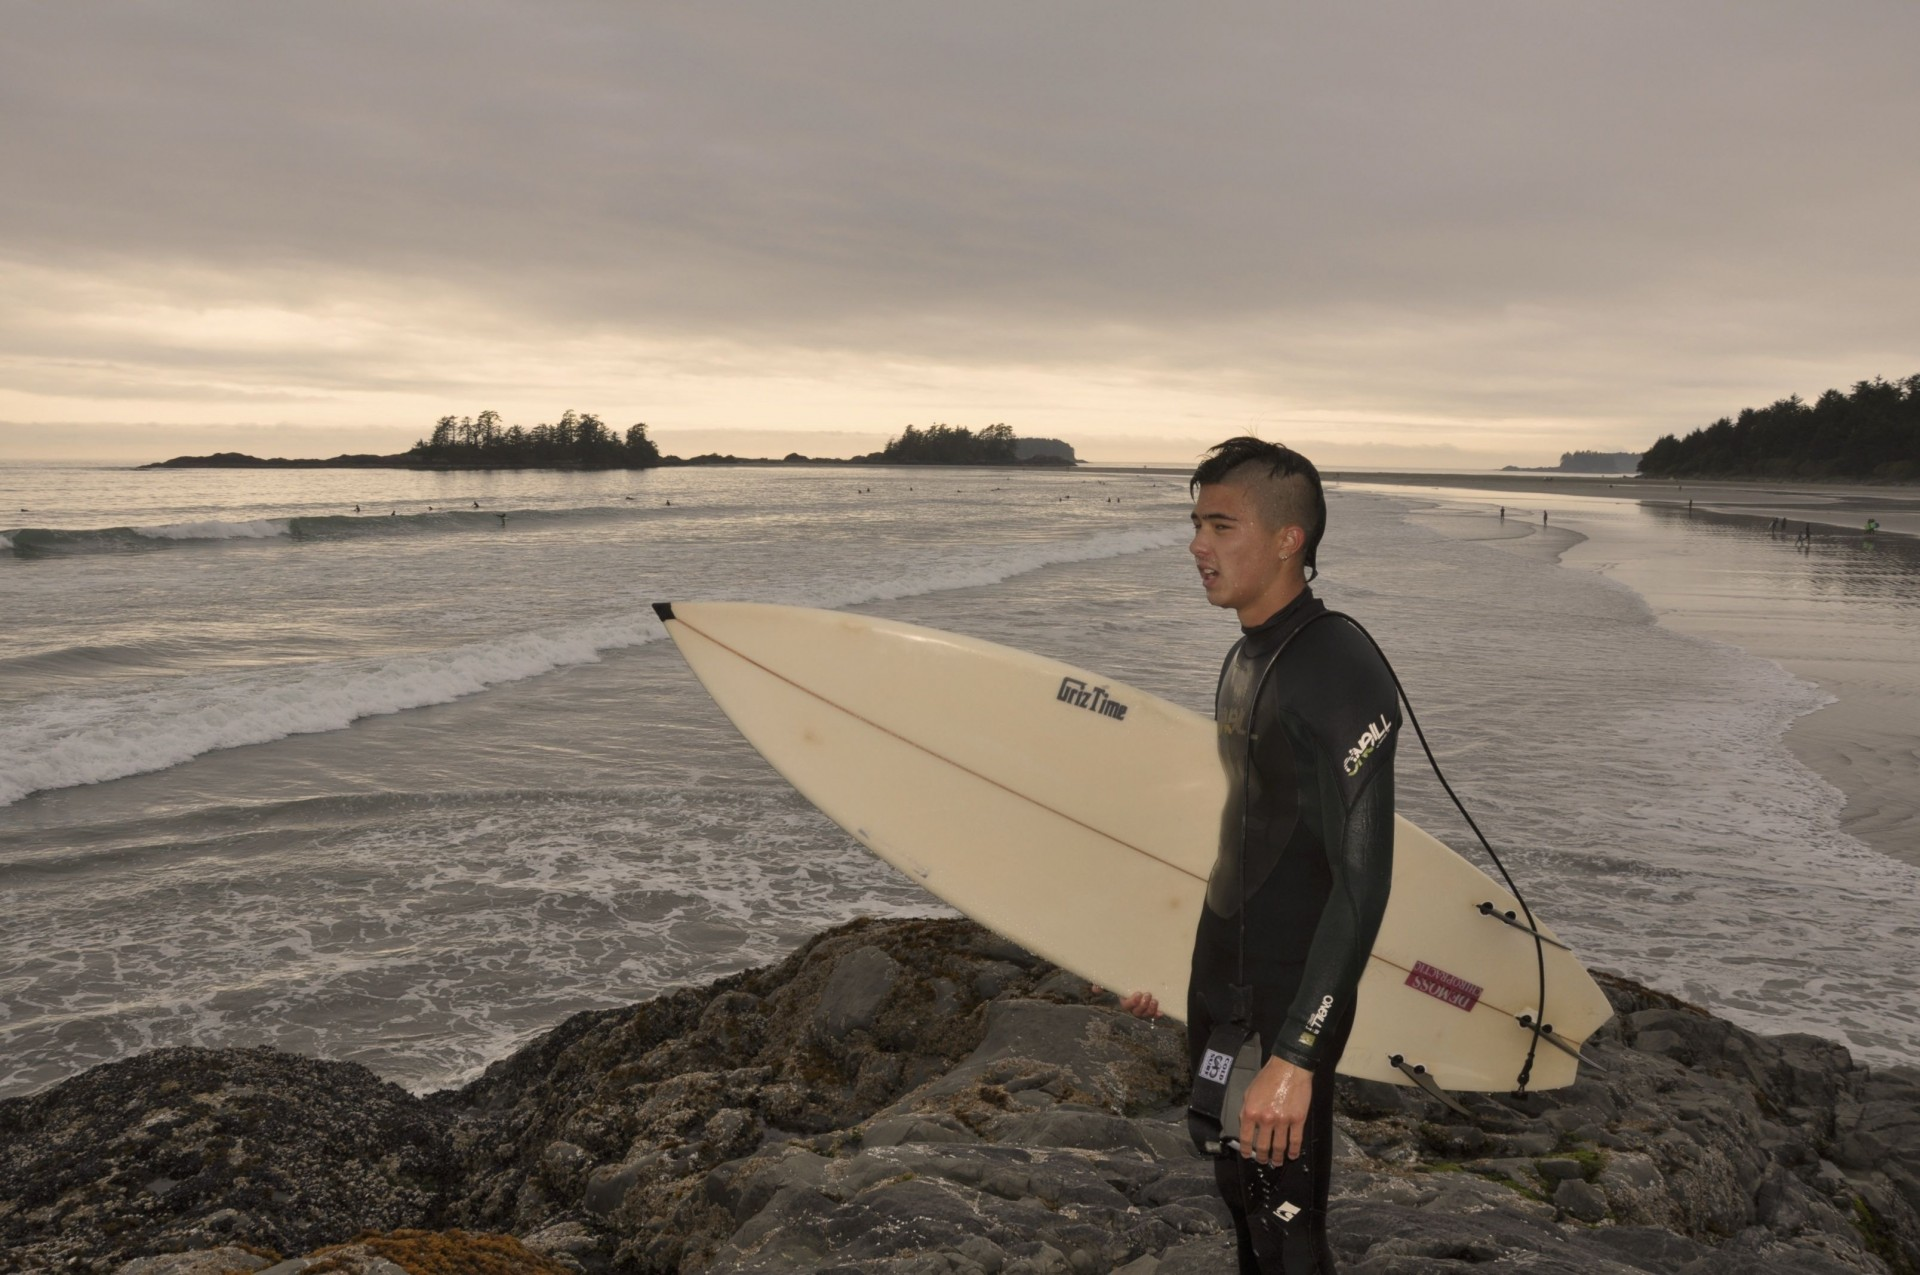 nigelb's photo of Tofino (Cox Bay)